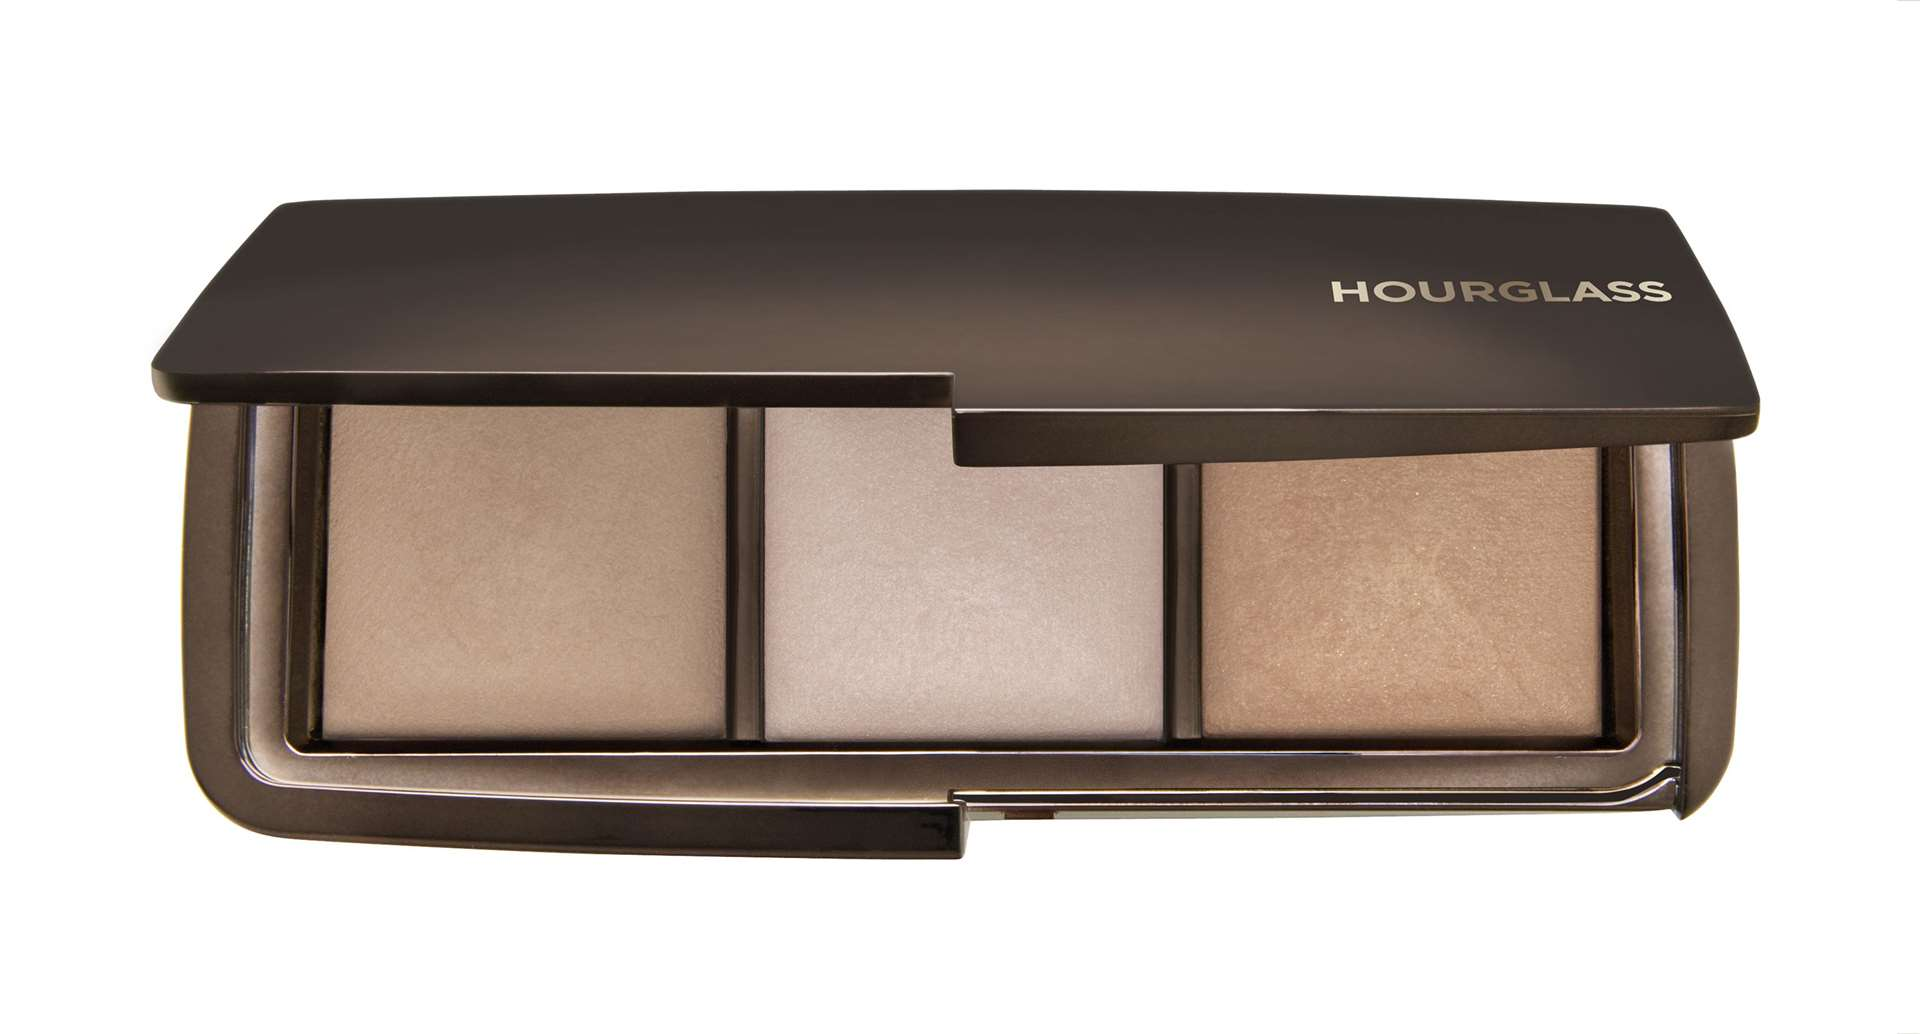 Hourglass Ambient Lighting Palette, £56, Space NK, Trinity Street, Cambridge (26884128)